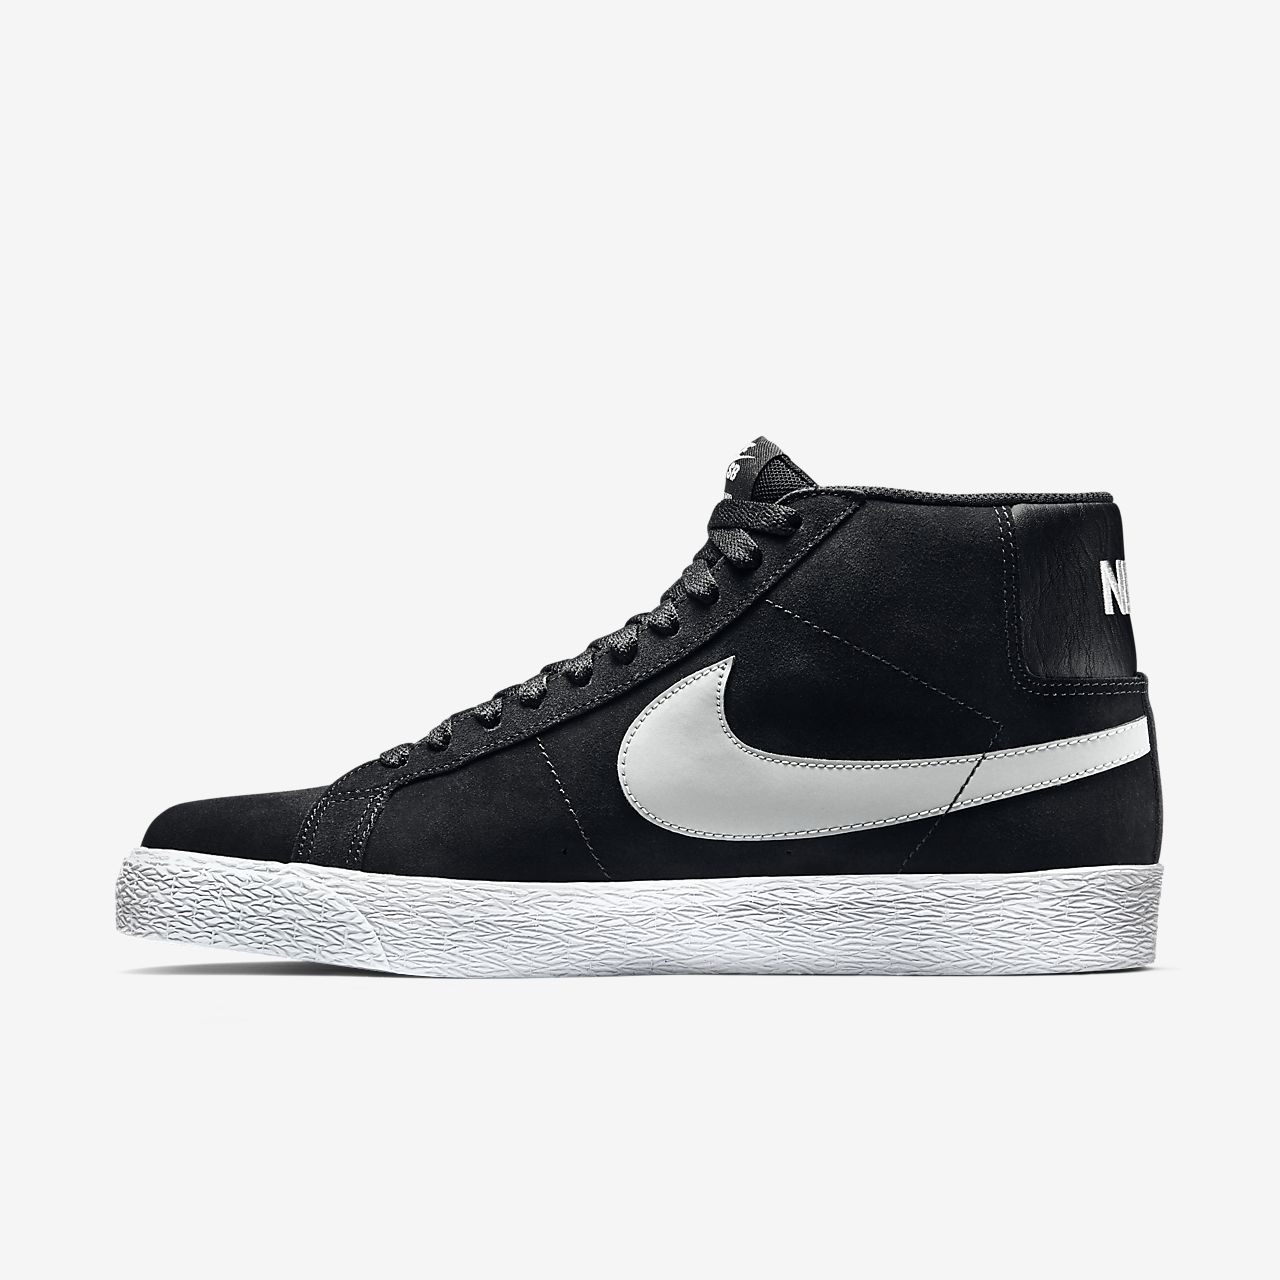 Nike SB Blazer Mid Men's Skateboarding Shoes Black/White bM2906C